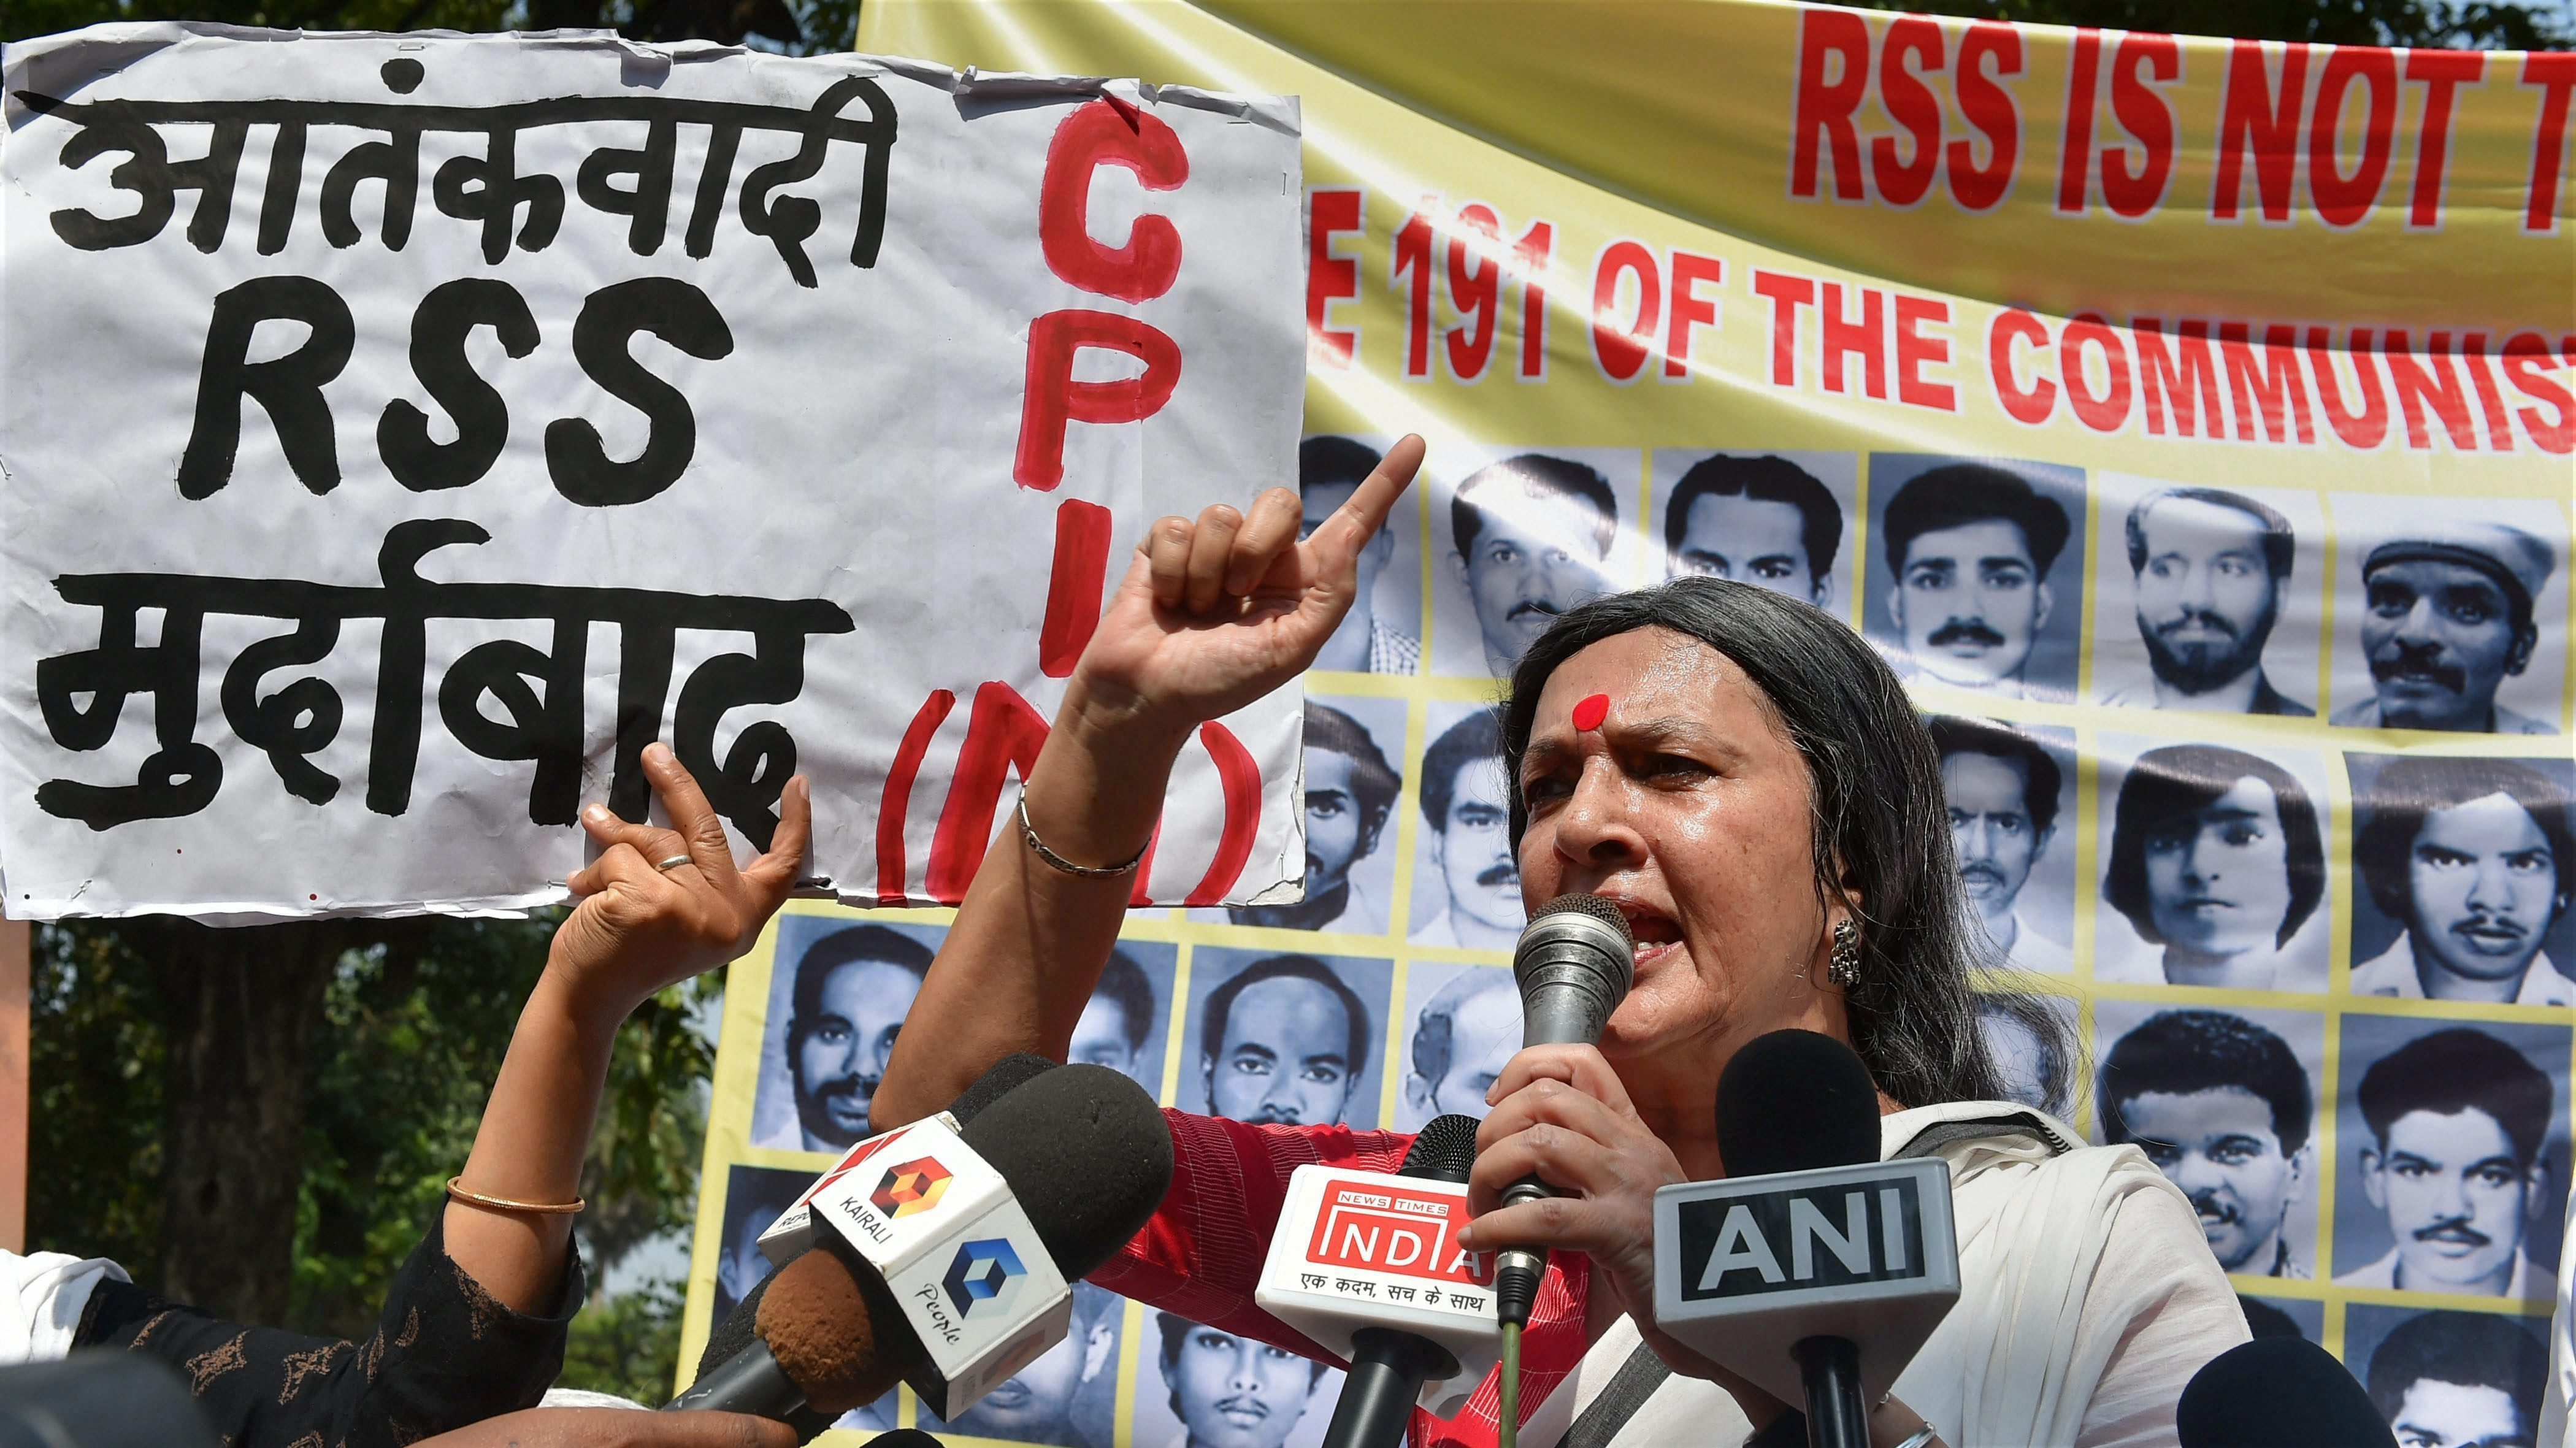 New Delhi: CPI (M) politburo member Brinda Karat addresses party workers during a protest at the BJP headquarters over alleged RSS-BJP violence against its cadres and supporters in Kerala, in New Delhi on Monday. PTI Photo by Kamal Kishore (PTI10_9_2017_000048b)